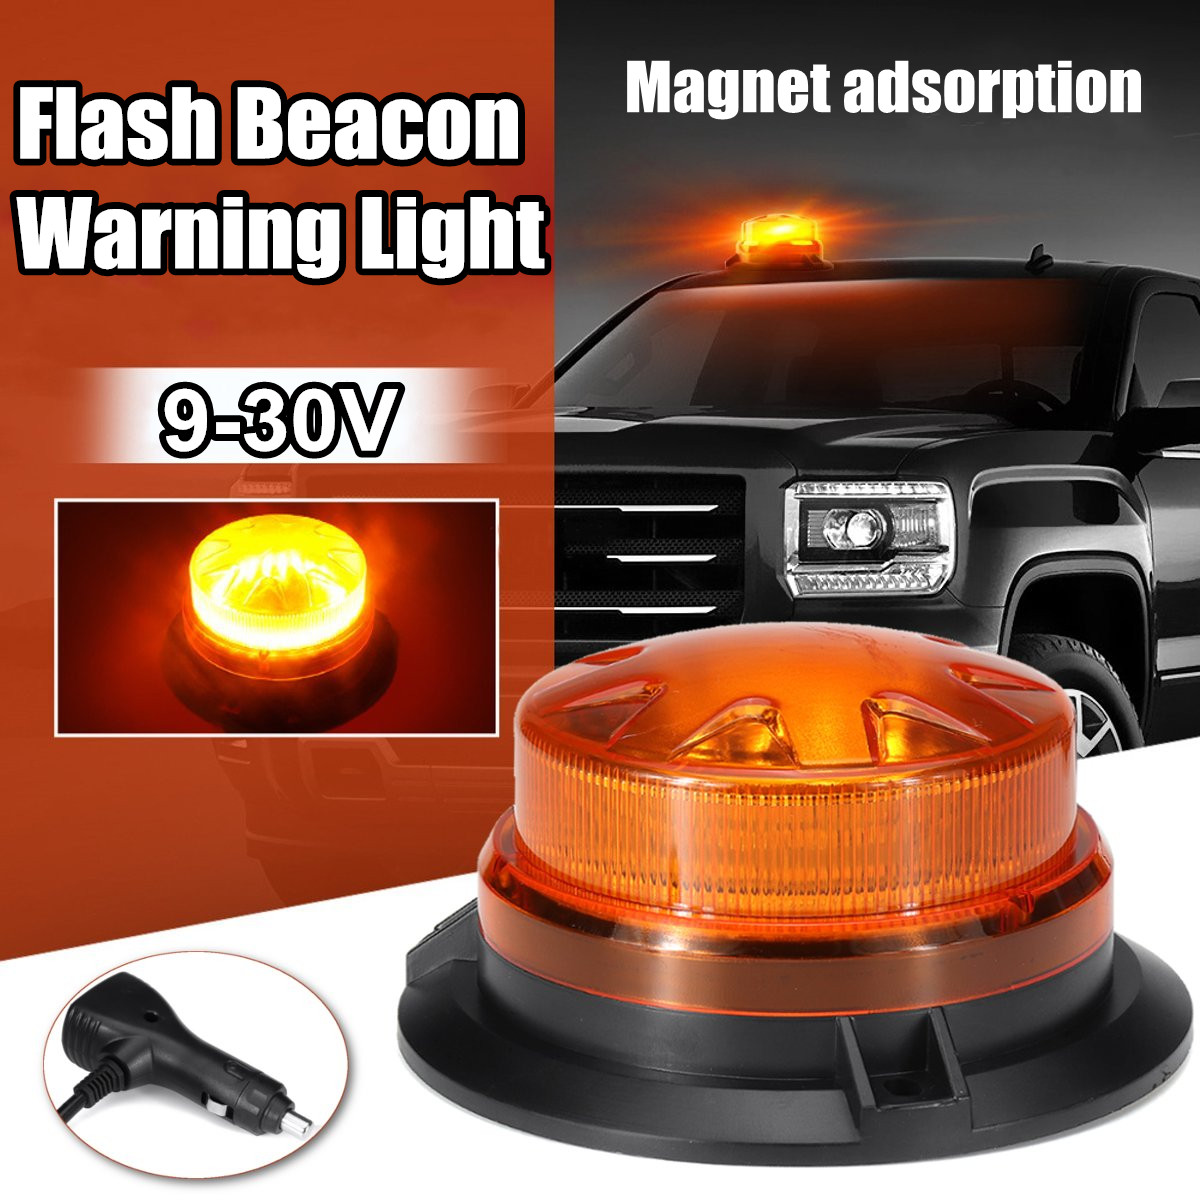 9-30V 24 LED Car Truck Strobe Warning Light LED Flashing Beacon Emergency Lights Waterproof Beacon Lamp With Magnetic Mounted